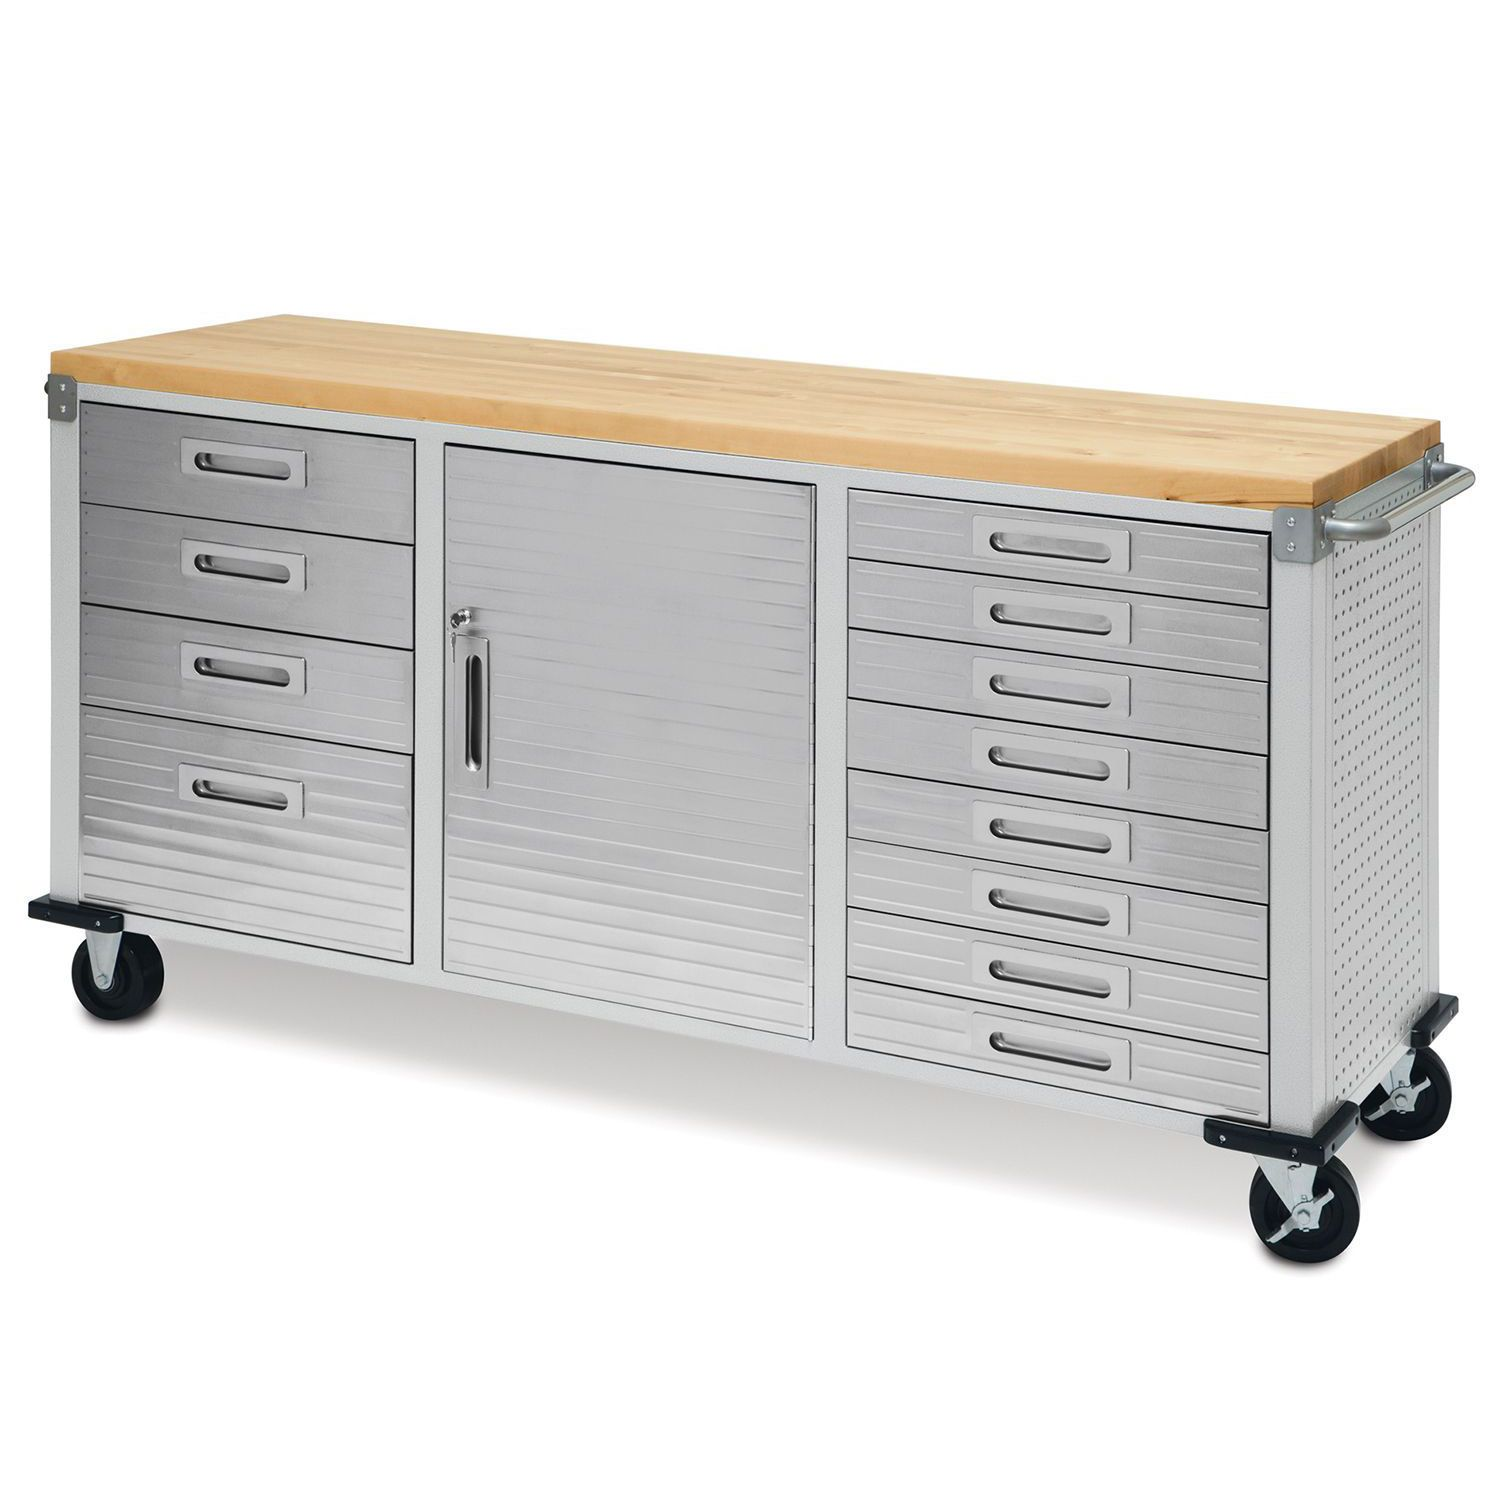 Seville Classics Ultra Heavy-Duty 12-Drawer Rolling Workbench at Sears.com